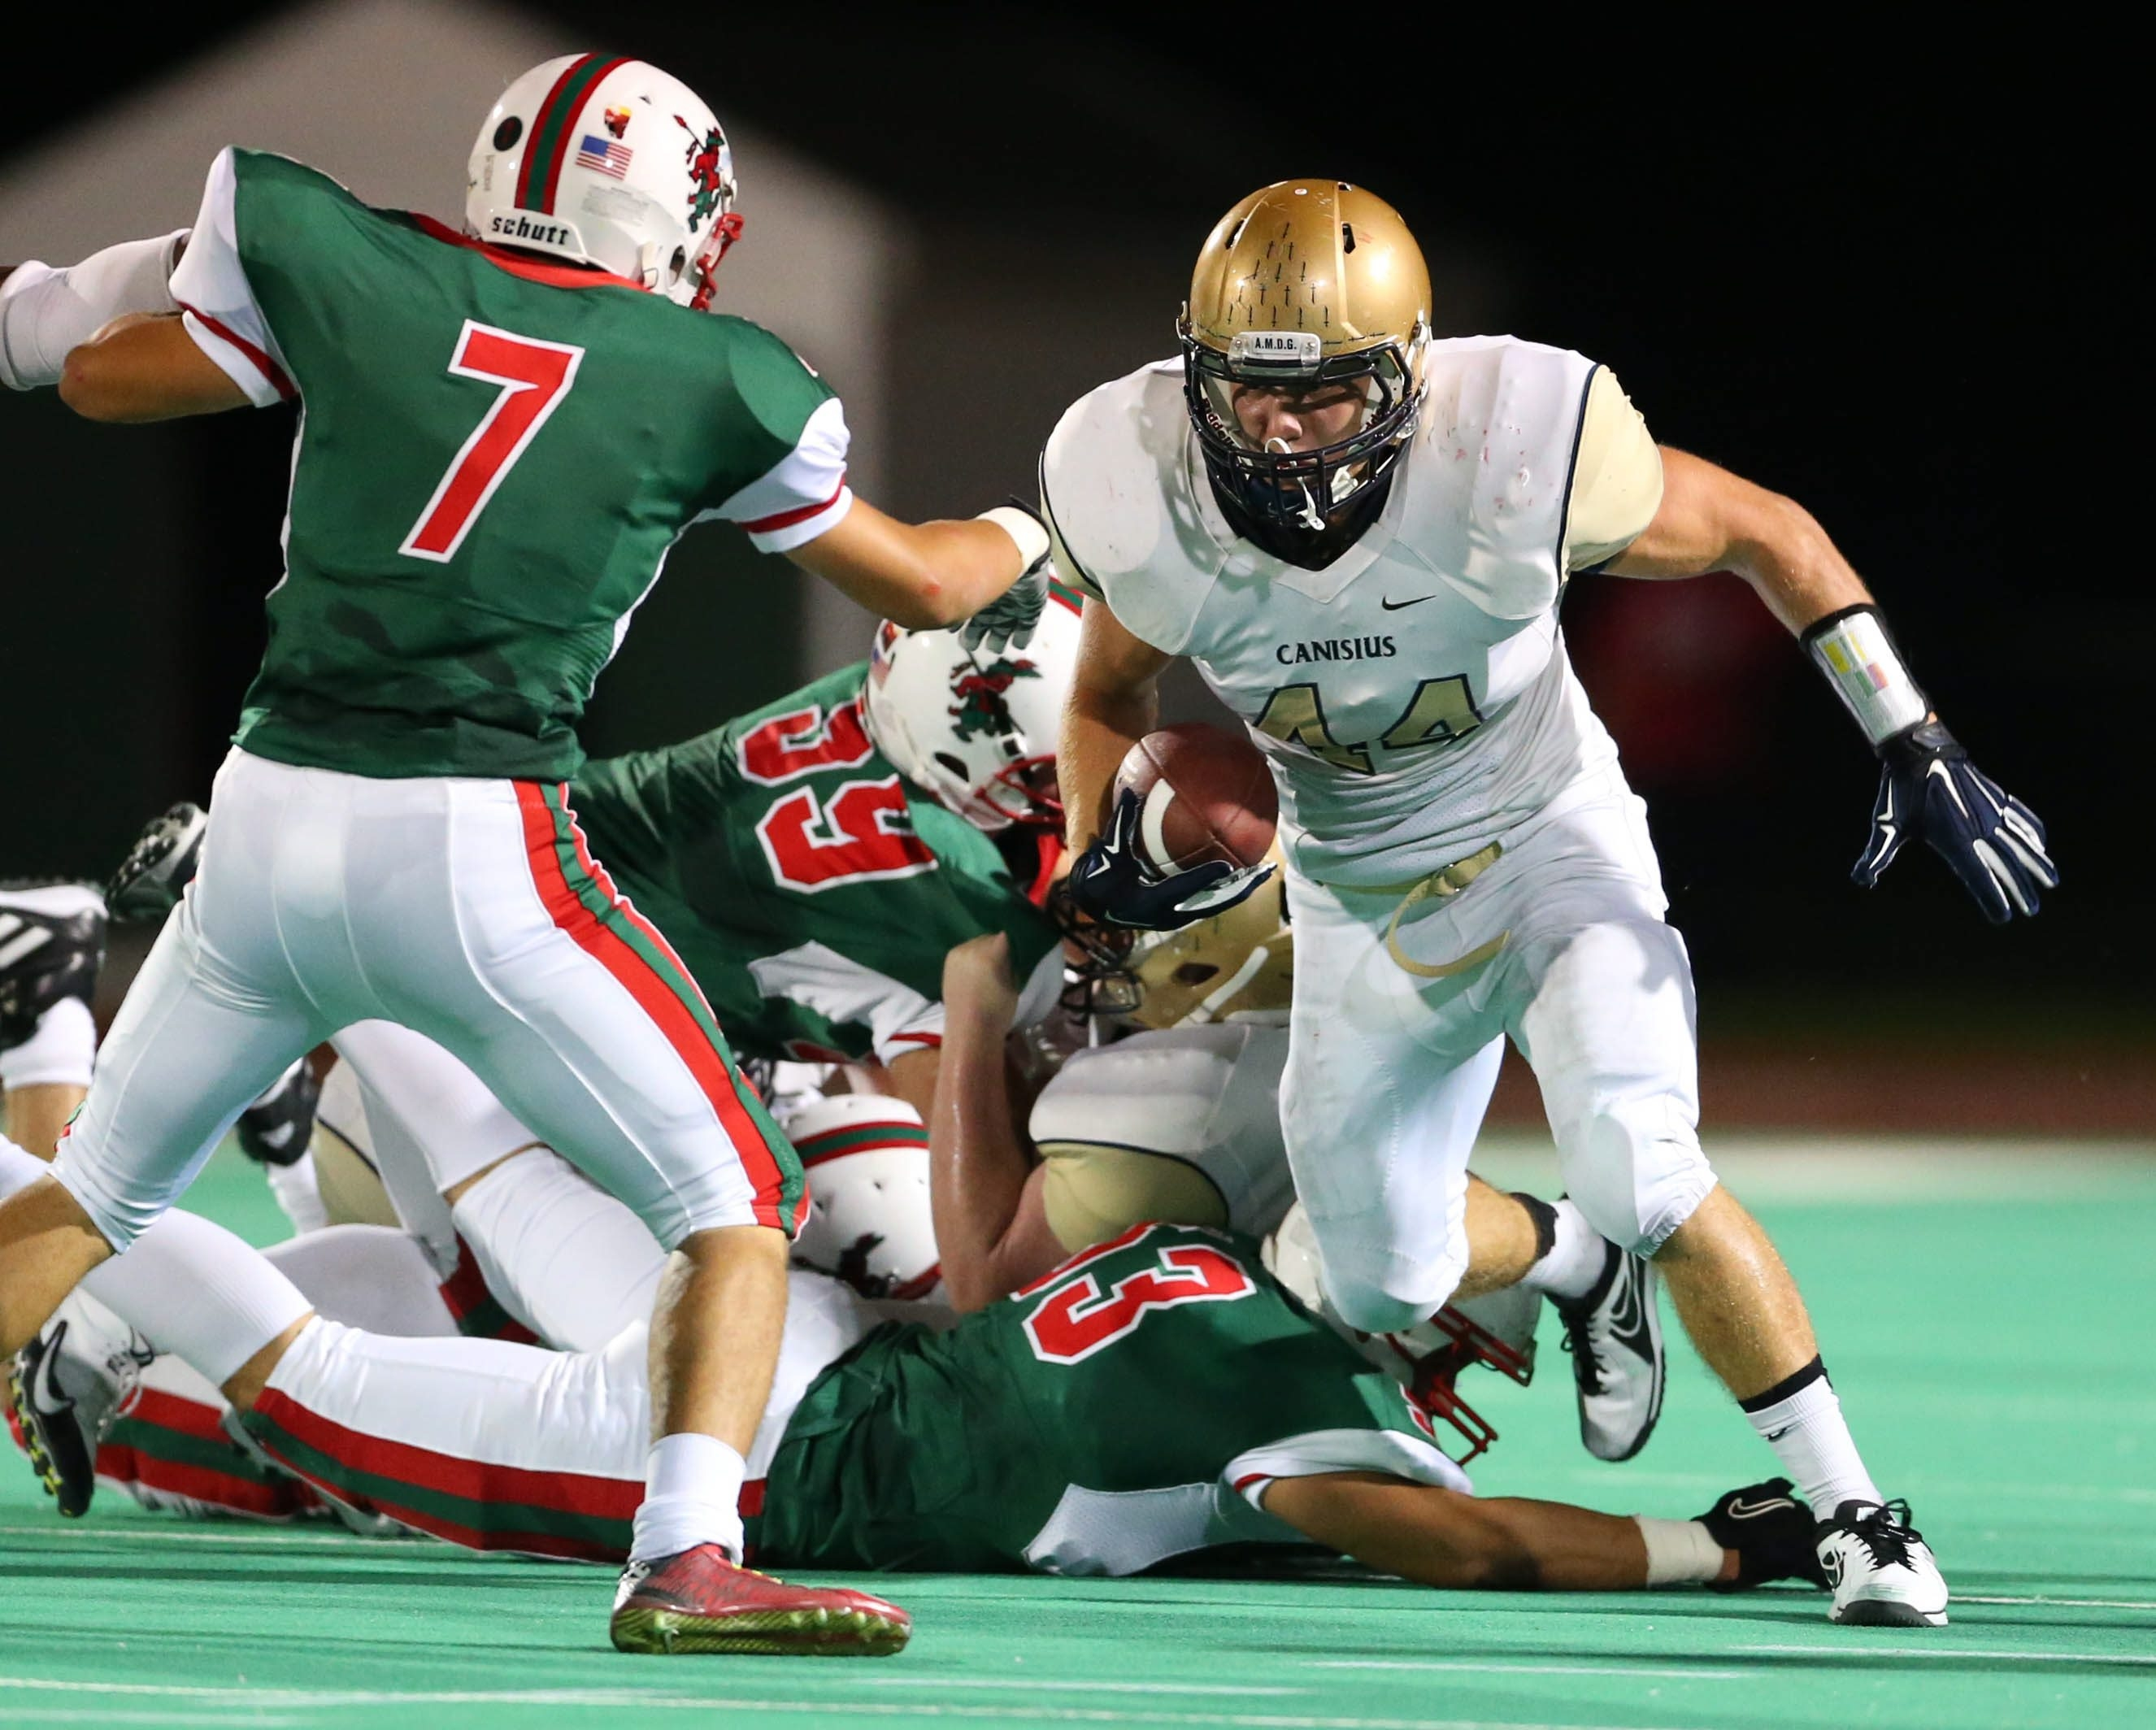 Brad Zaffram led the Canisius Crusaders with 91 tackles while playing just nine games.